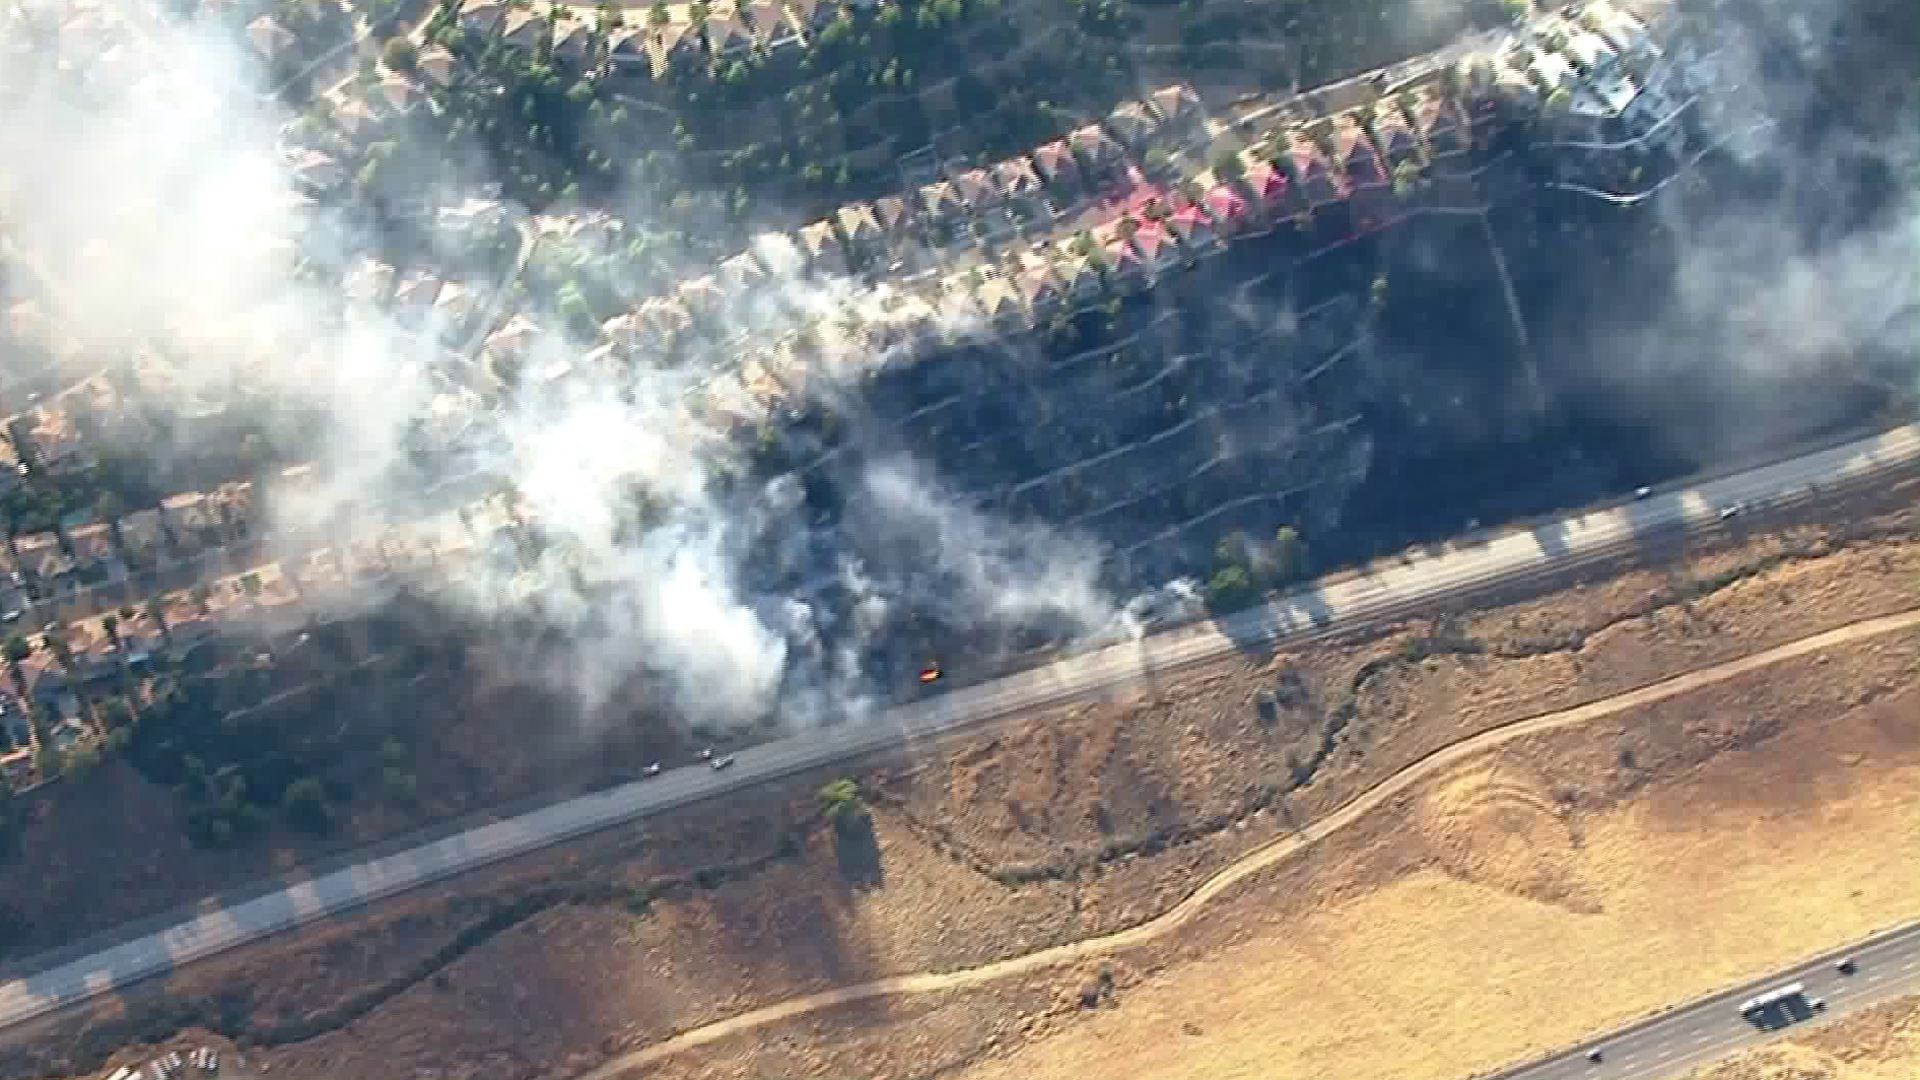 A home burns off the Old Road next to the 5 Freeway in the Old Fire in the Castaic area on Oct. 24, 2019. (Credit: KTLA)